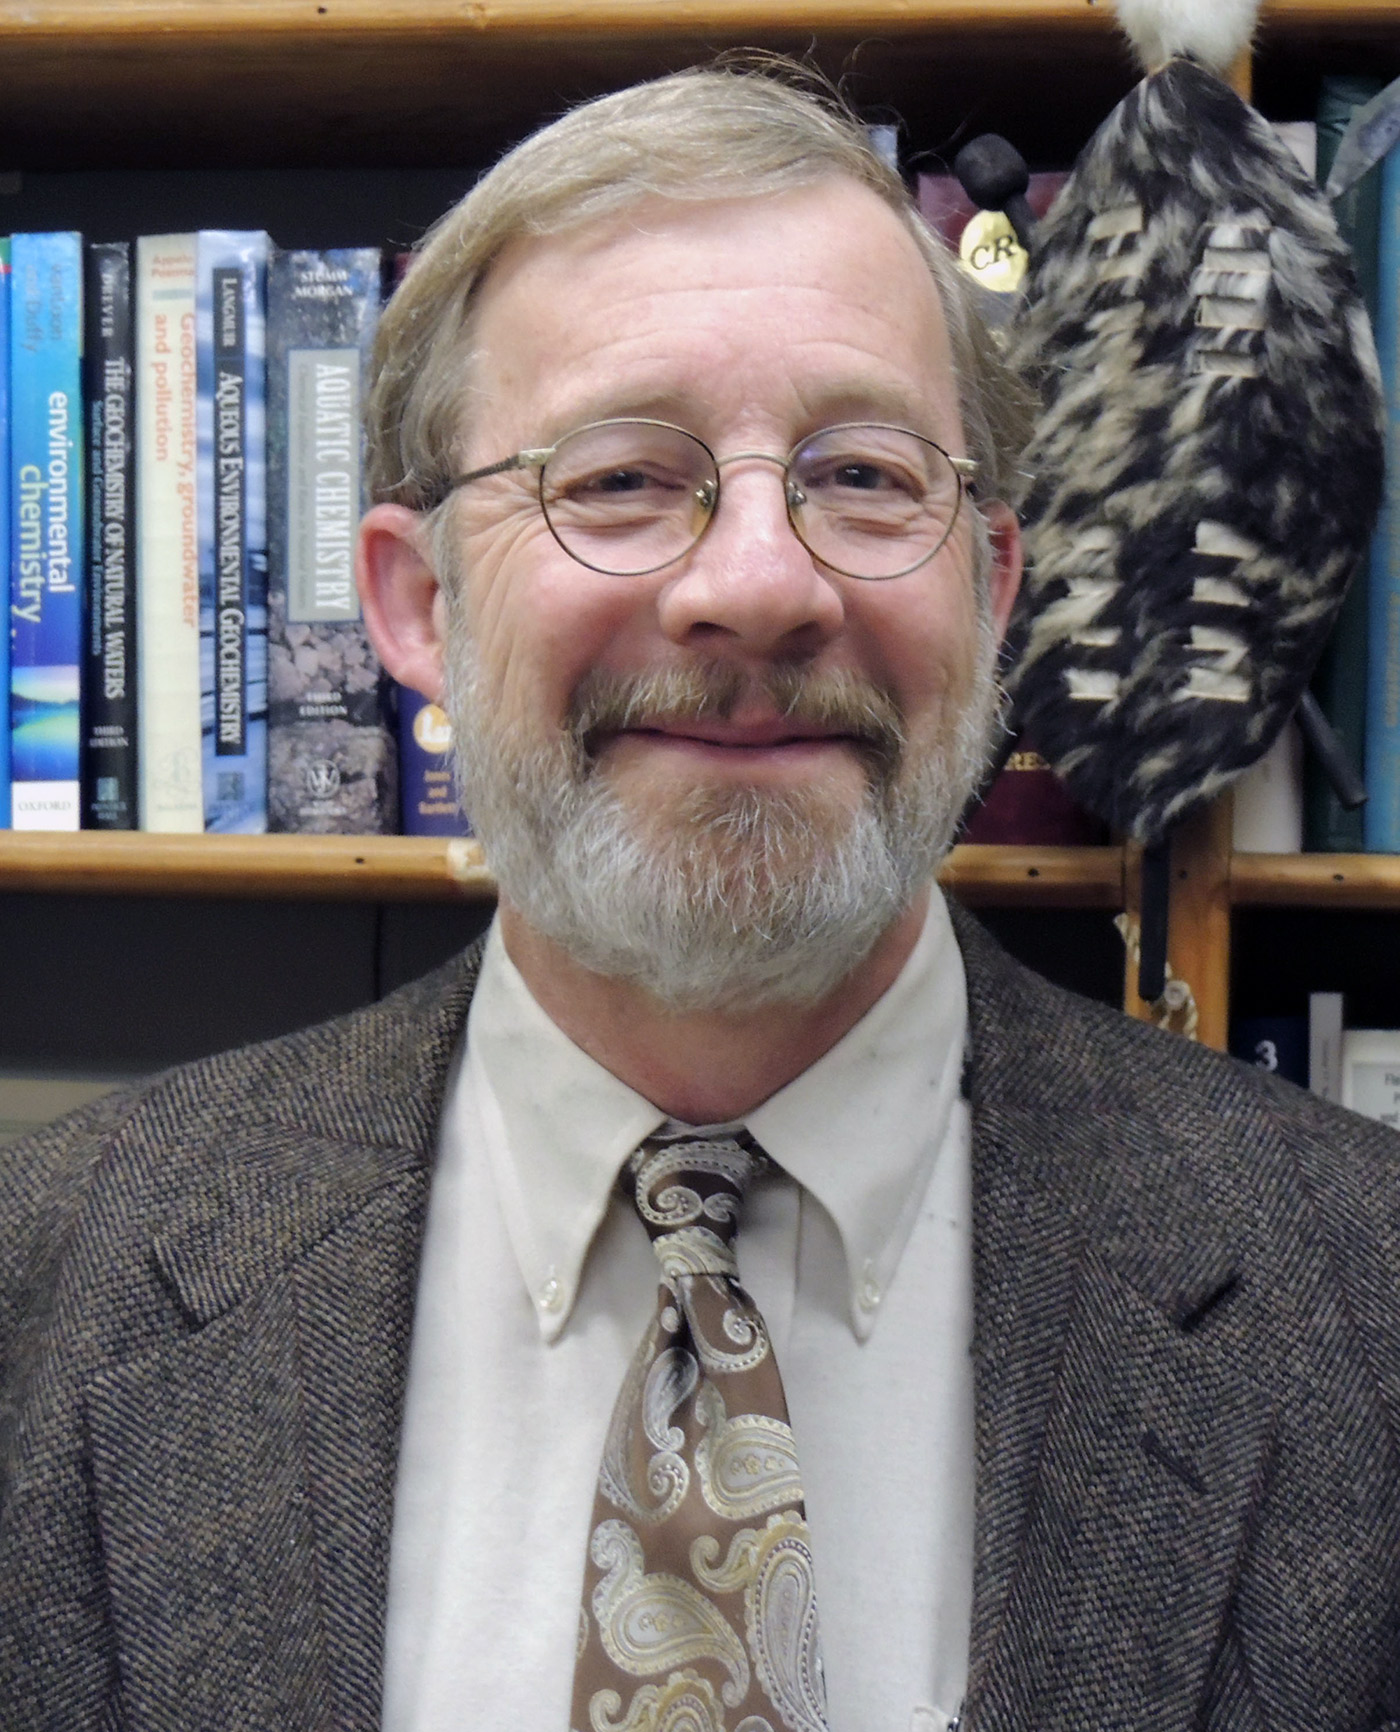 James (Jamie) Maughan is an Adjunct Faculty in the Environmental, Earth and Atmospheric Sciences Department at UMass Lowell.